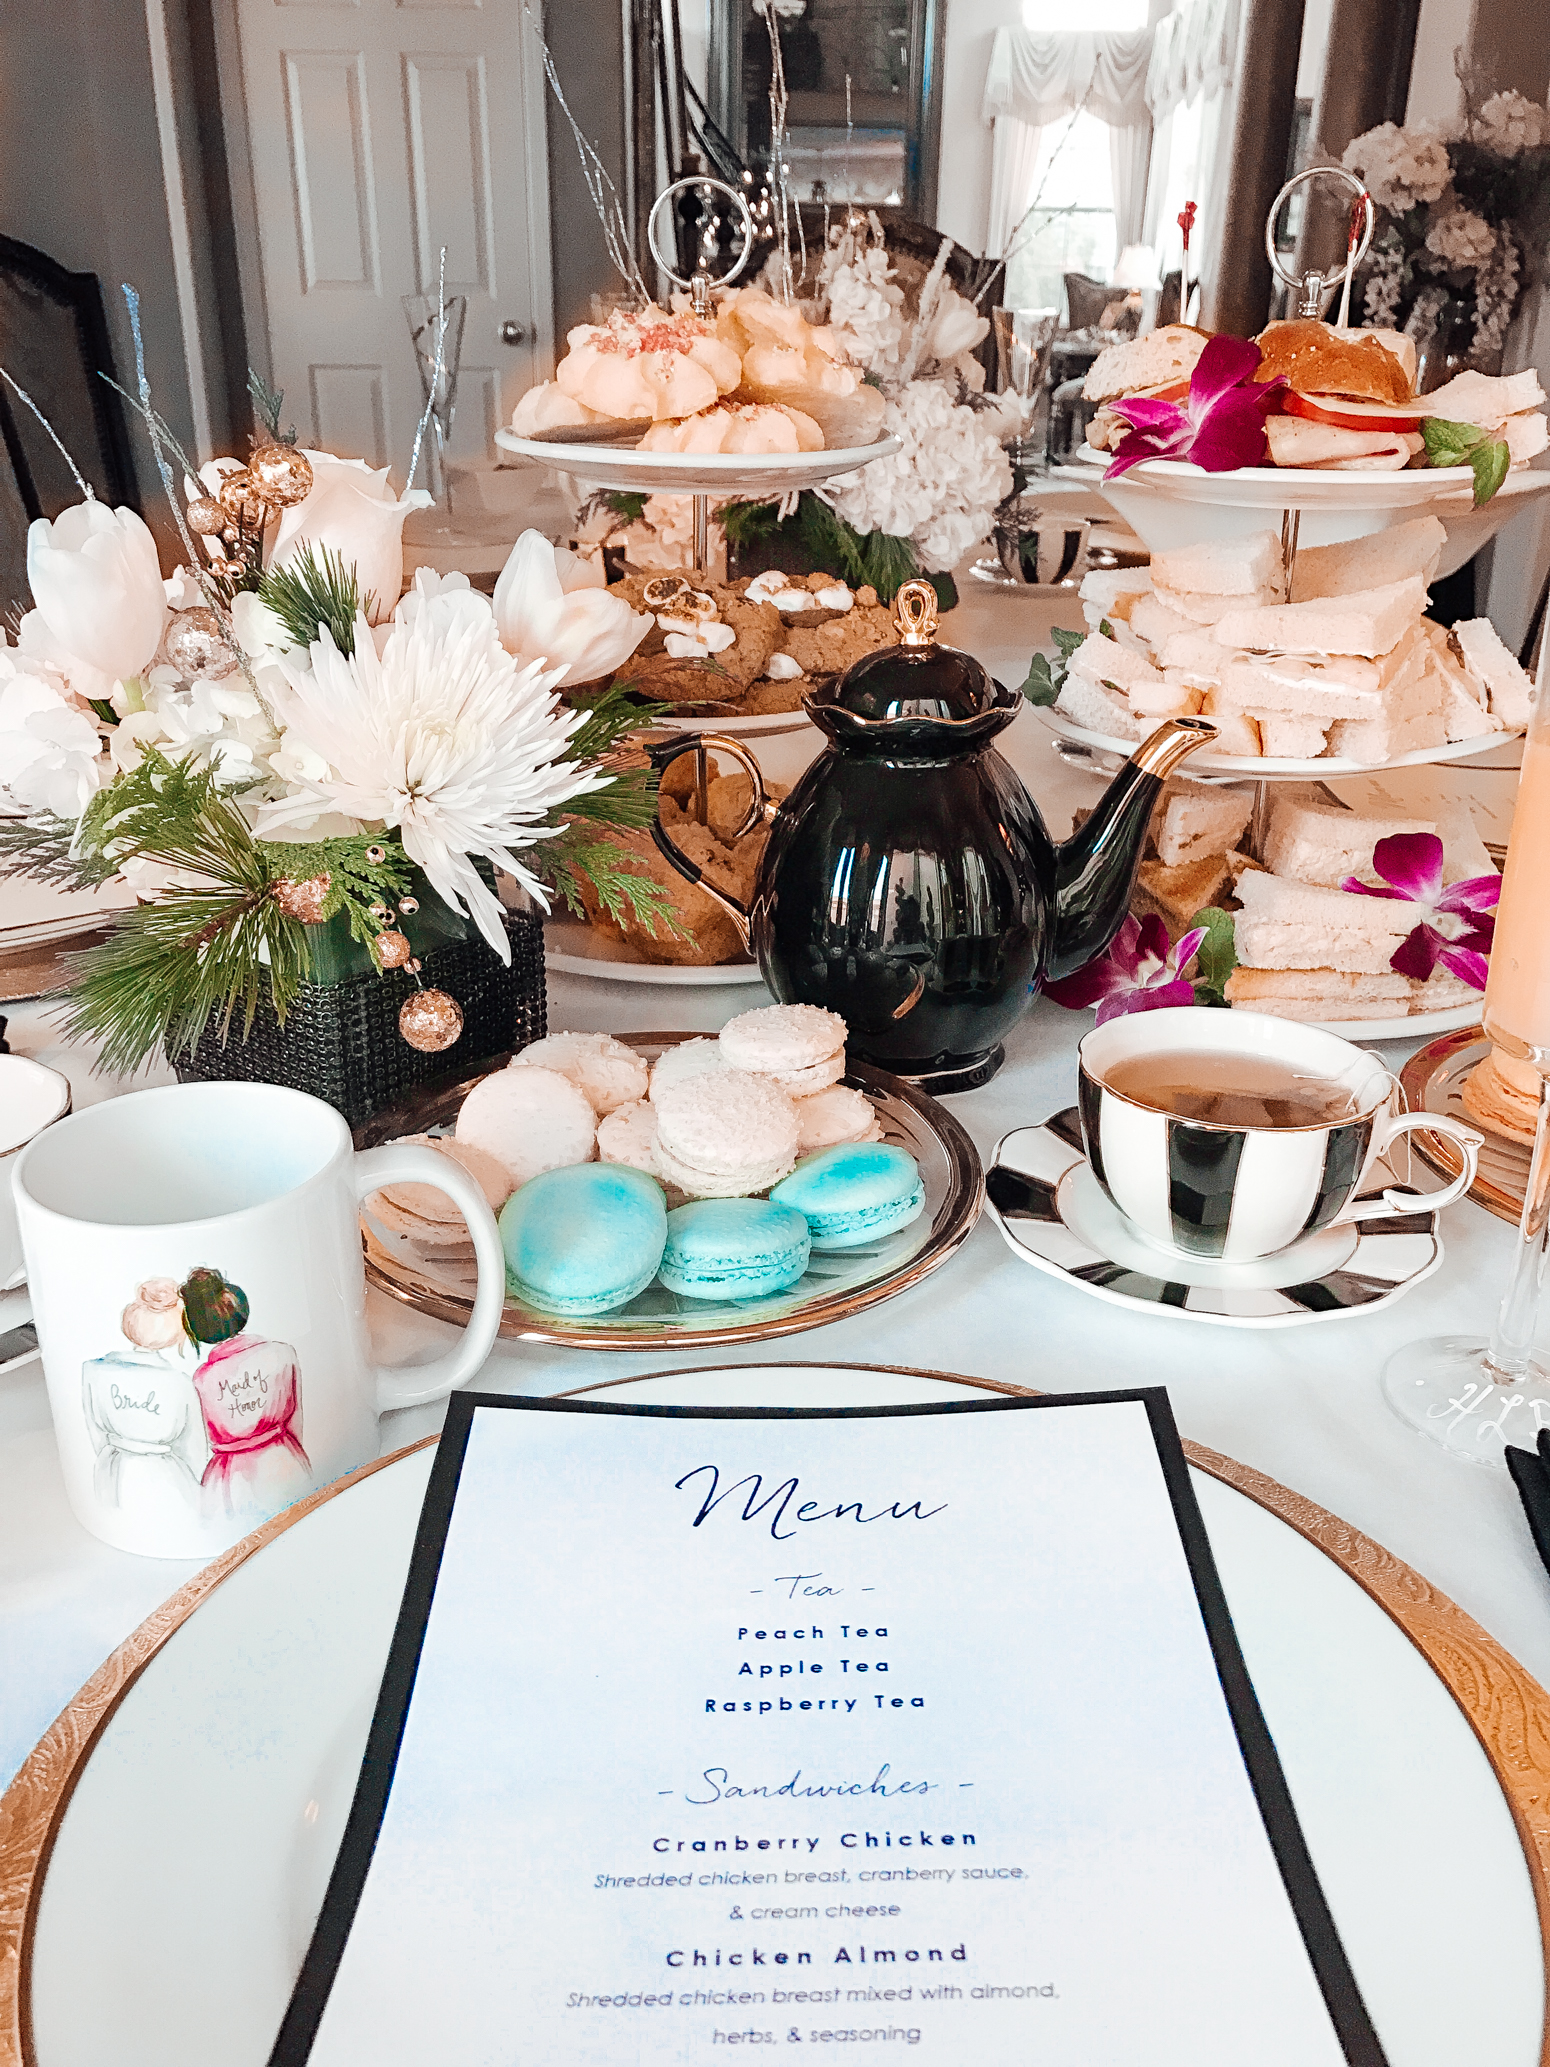 Blondie in the City | Let's Have Tea With The Bride To Be | How To Ask Your Bridesmaids